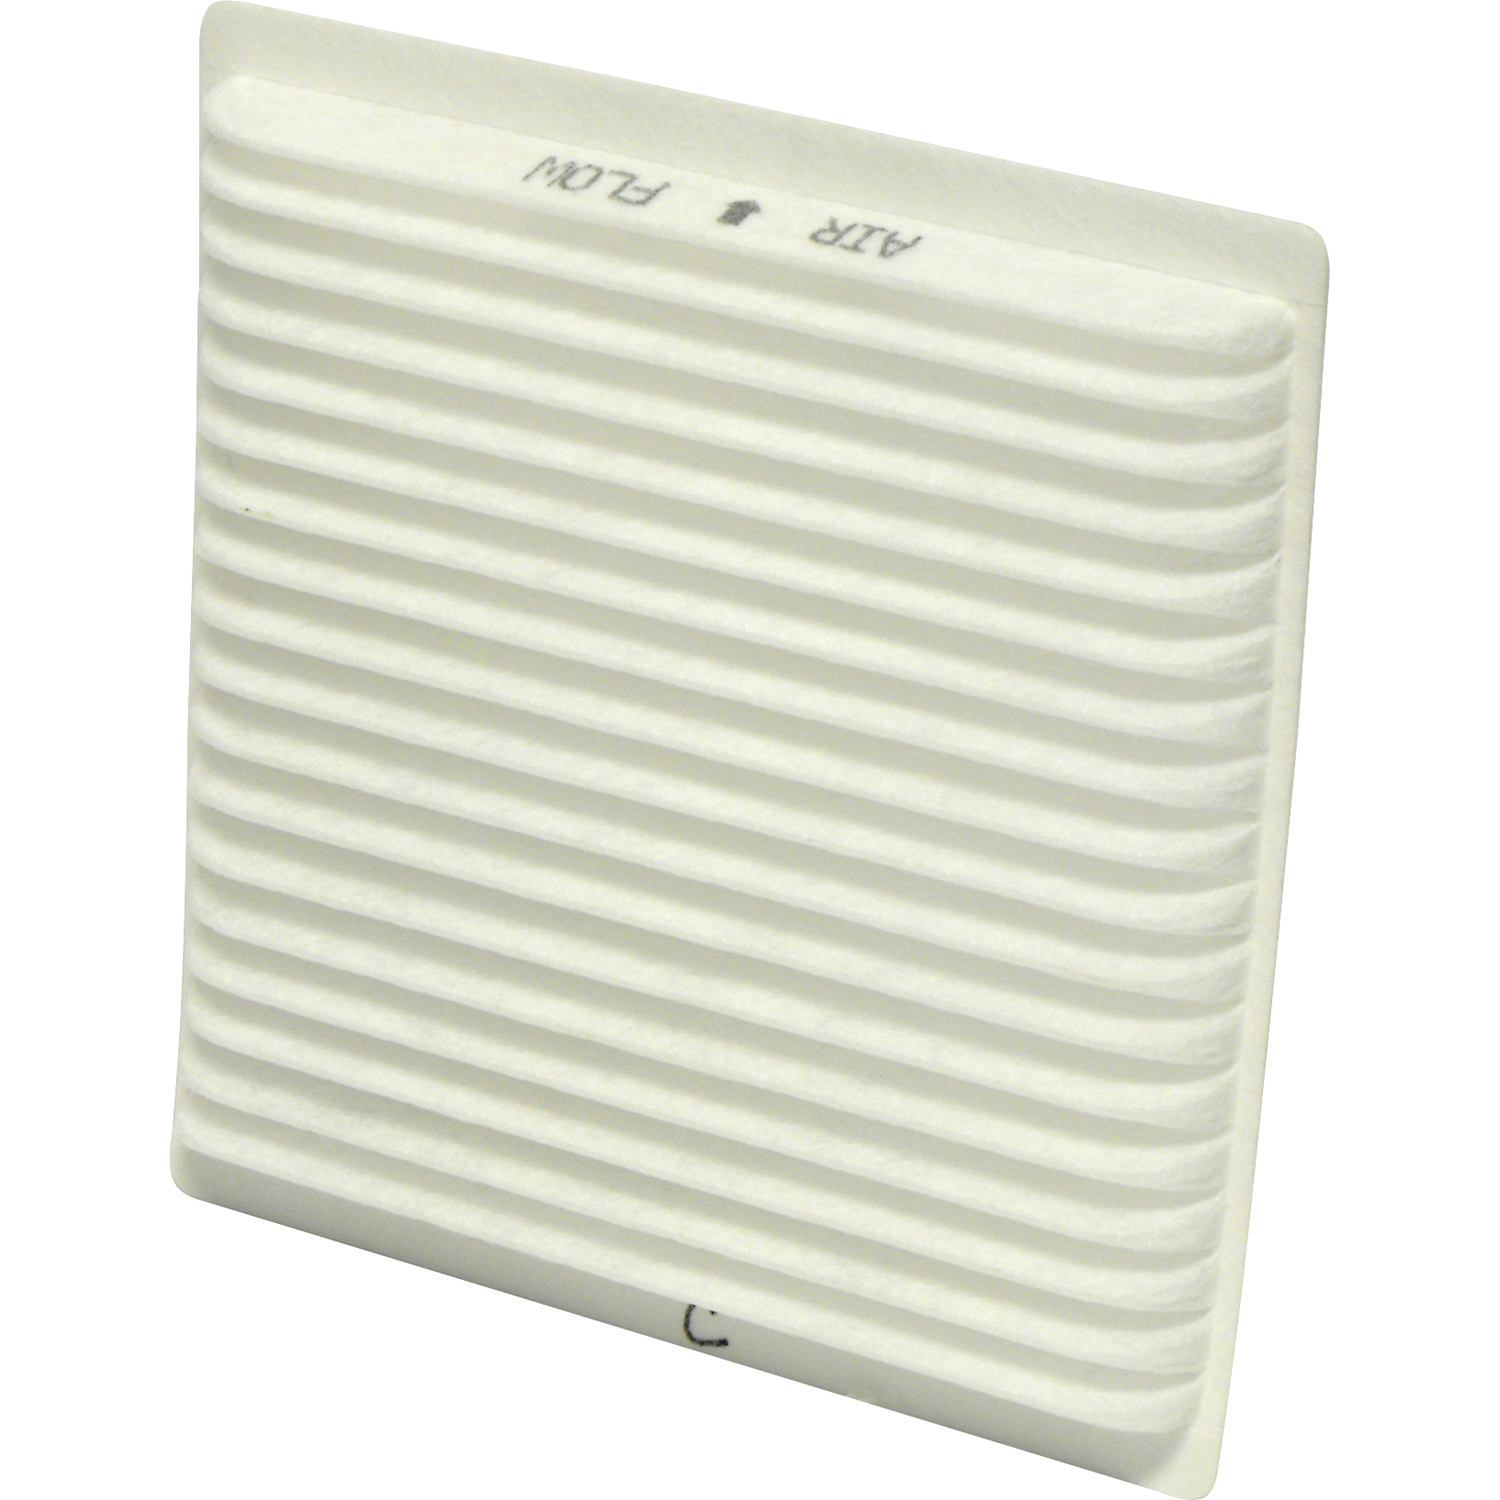 Particulate Cabin Air Filter FI 1204C